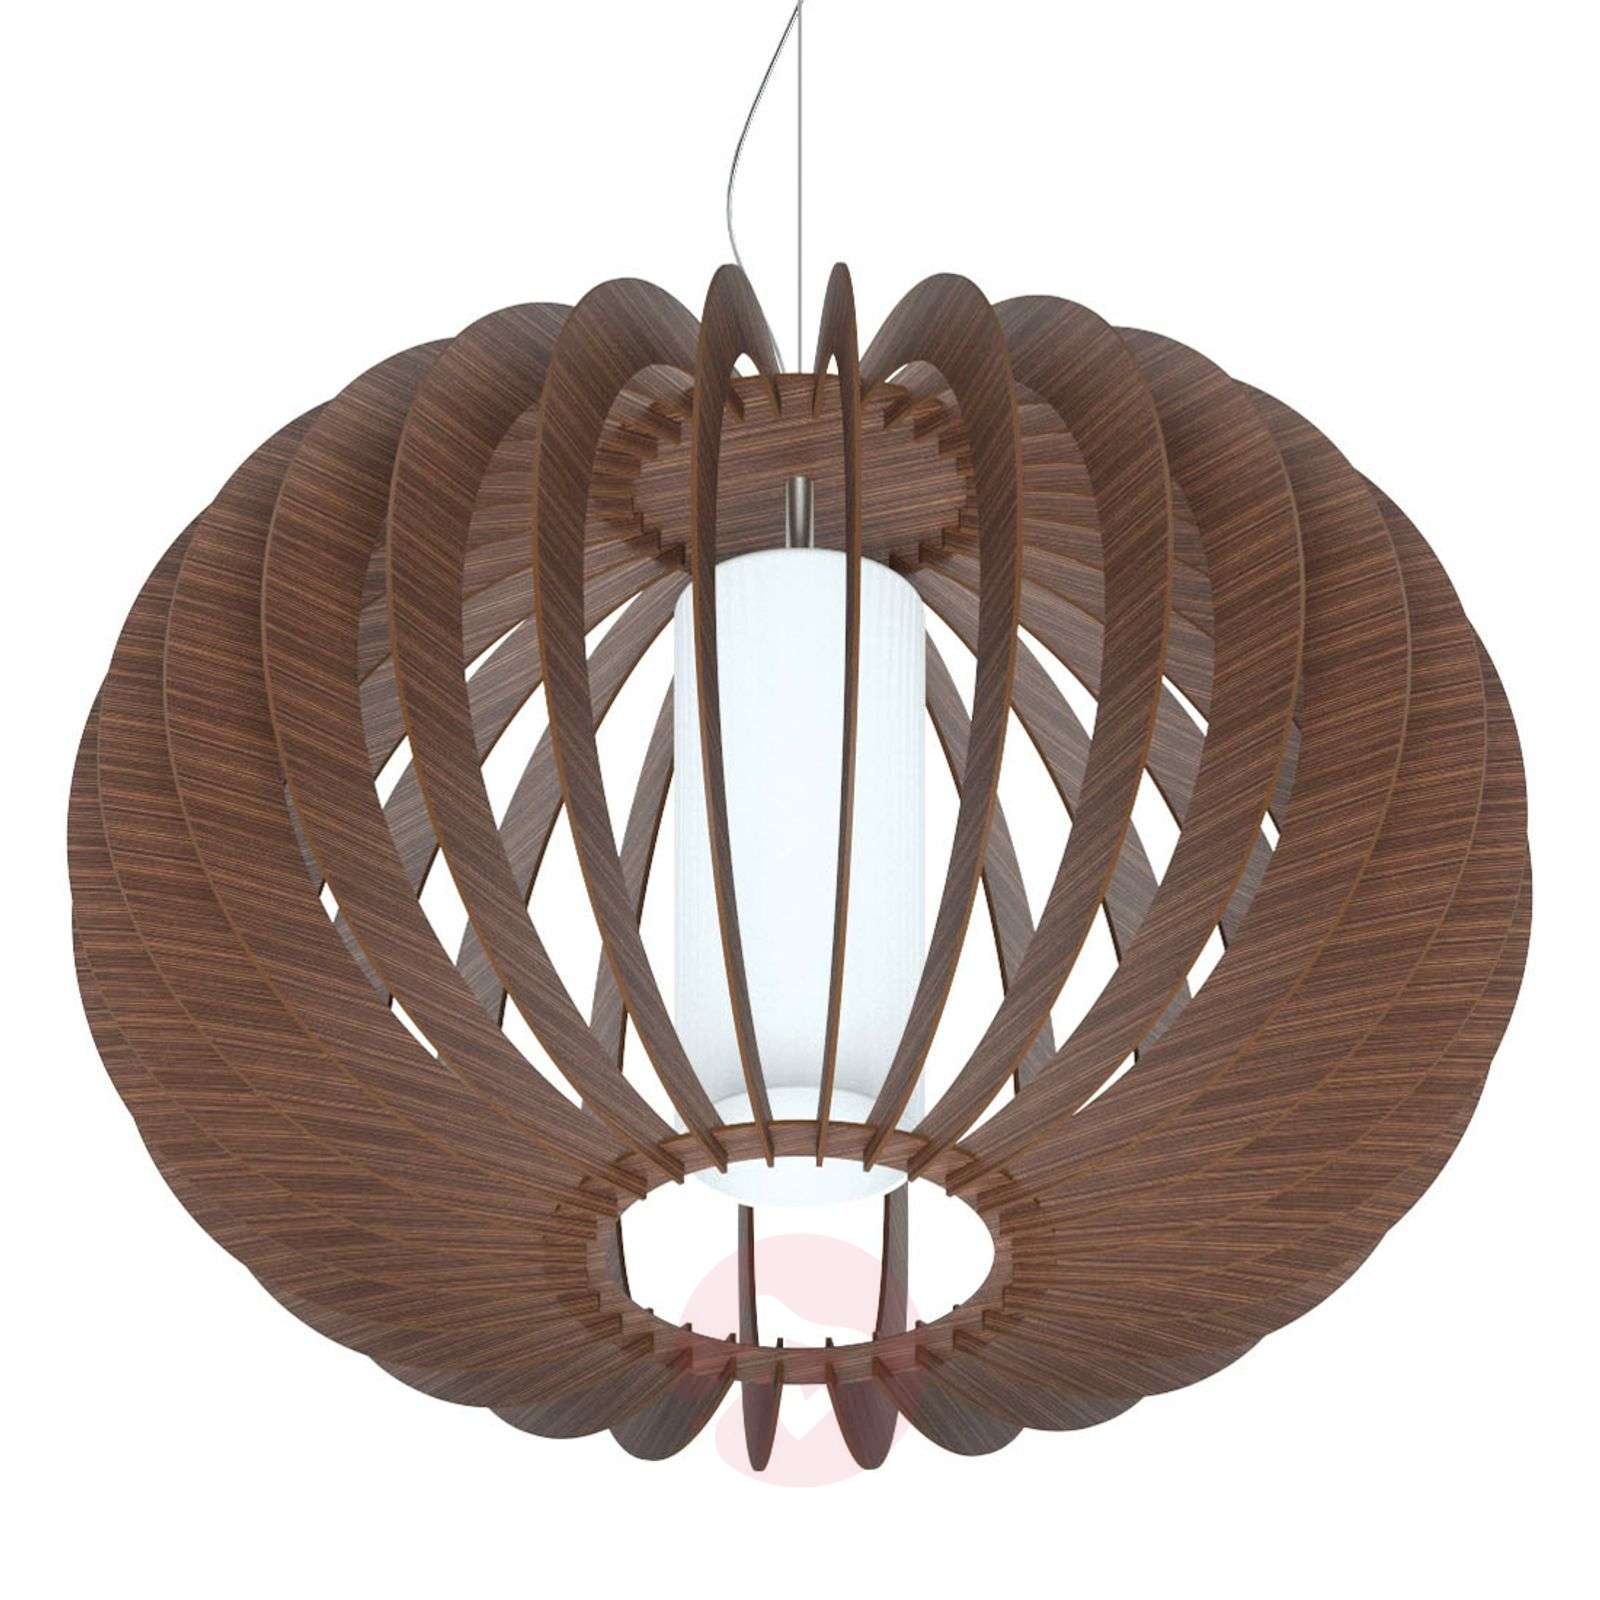 Stellato a pendant light with style-3031827-01